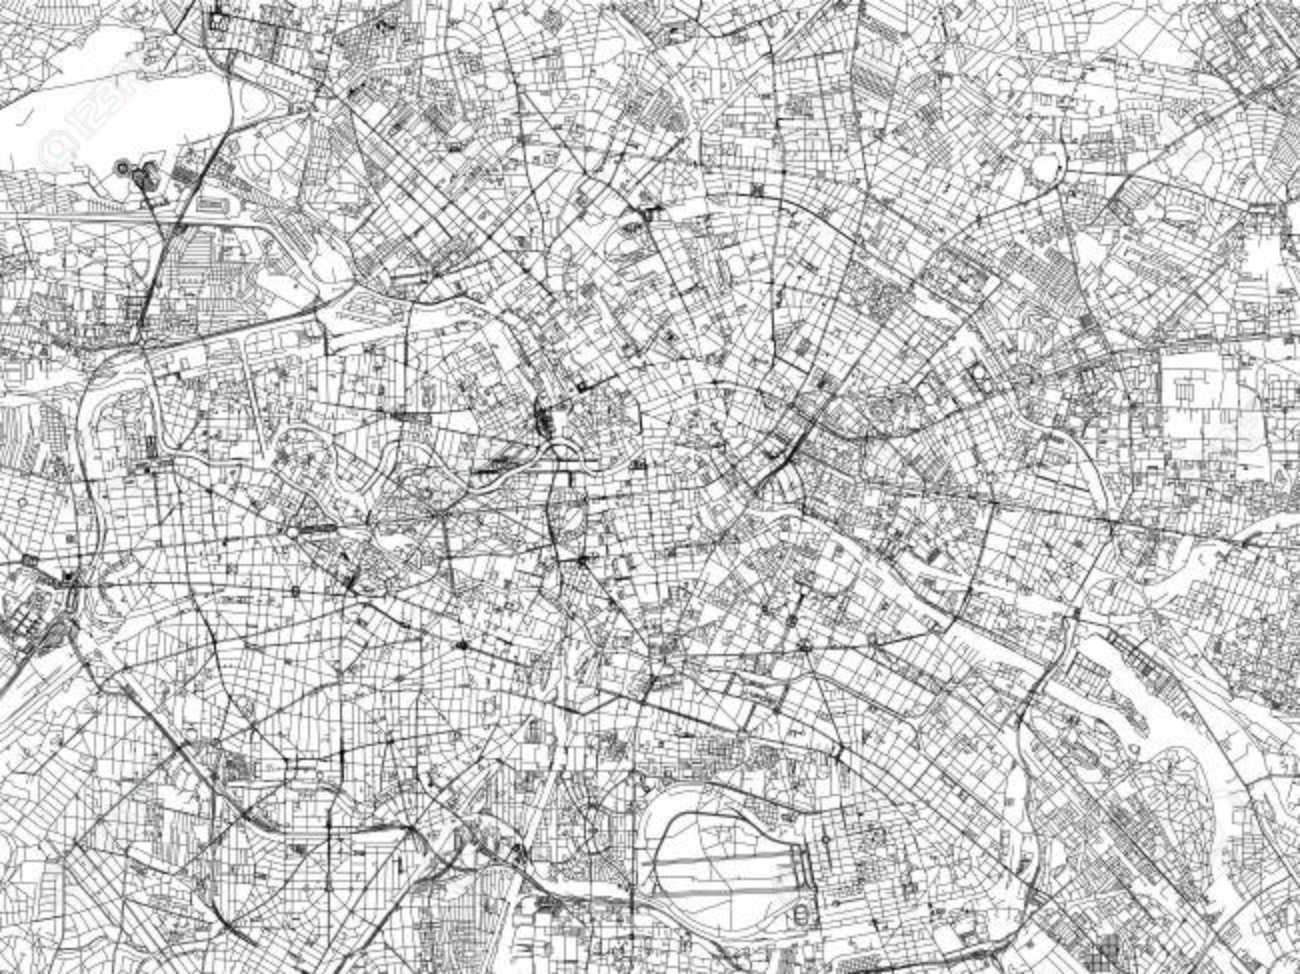 Berlin map, cities, streets, Germany, satellite view on map of luxembourg cities, map of europe, map of swiss cities, map of french riviera cities, map of spain with cities, map of kosovo cities, map of rome cities, map of san diego area cities, map of democratic republic of congo cities, east germany map with cities, map of western mass cities, map of guyana cities, map of the carolinas cities, map of s korea cities, map of west african cities, map of mid atlantic cities, map of oceania cities, map of new brunswick canada cities, map of ireland cities, map of boston area cities,